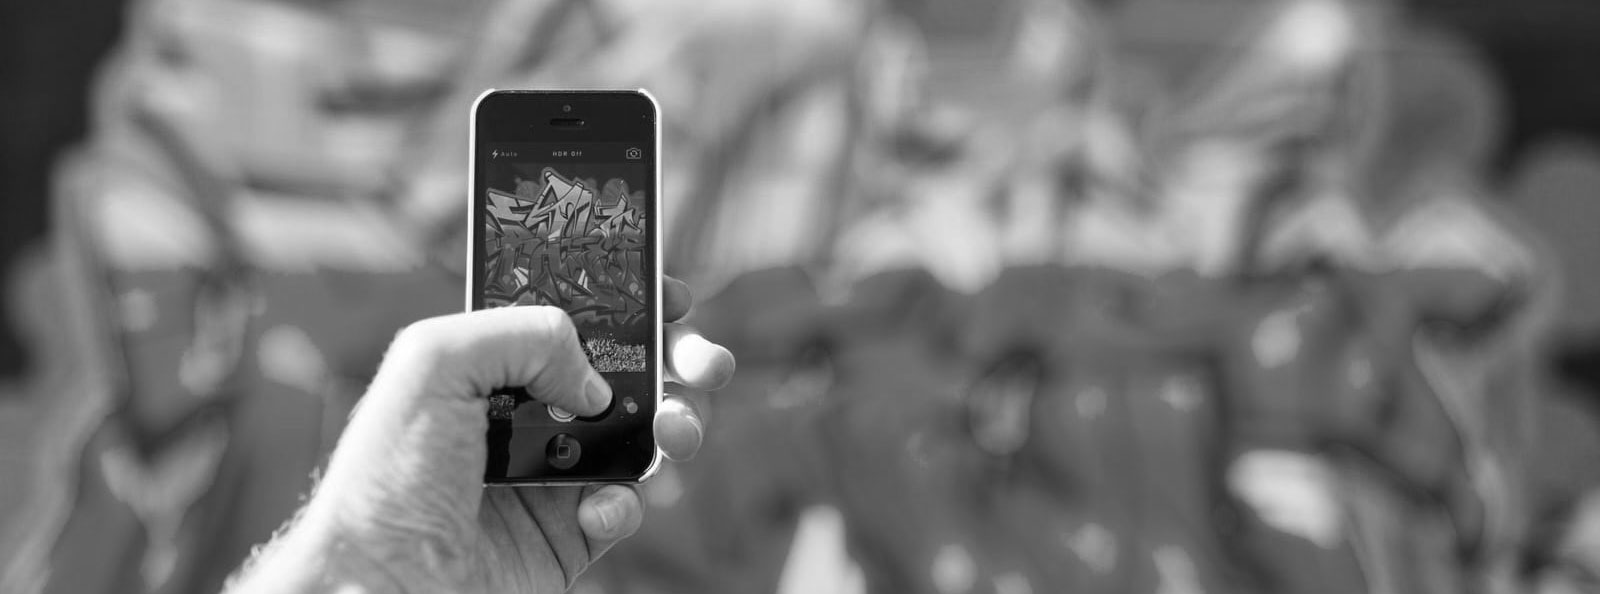 An individual clicking a photo of graffiti on the wall through his mobile